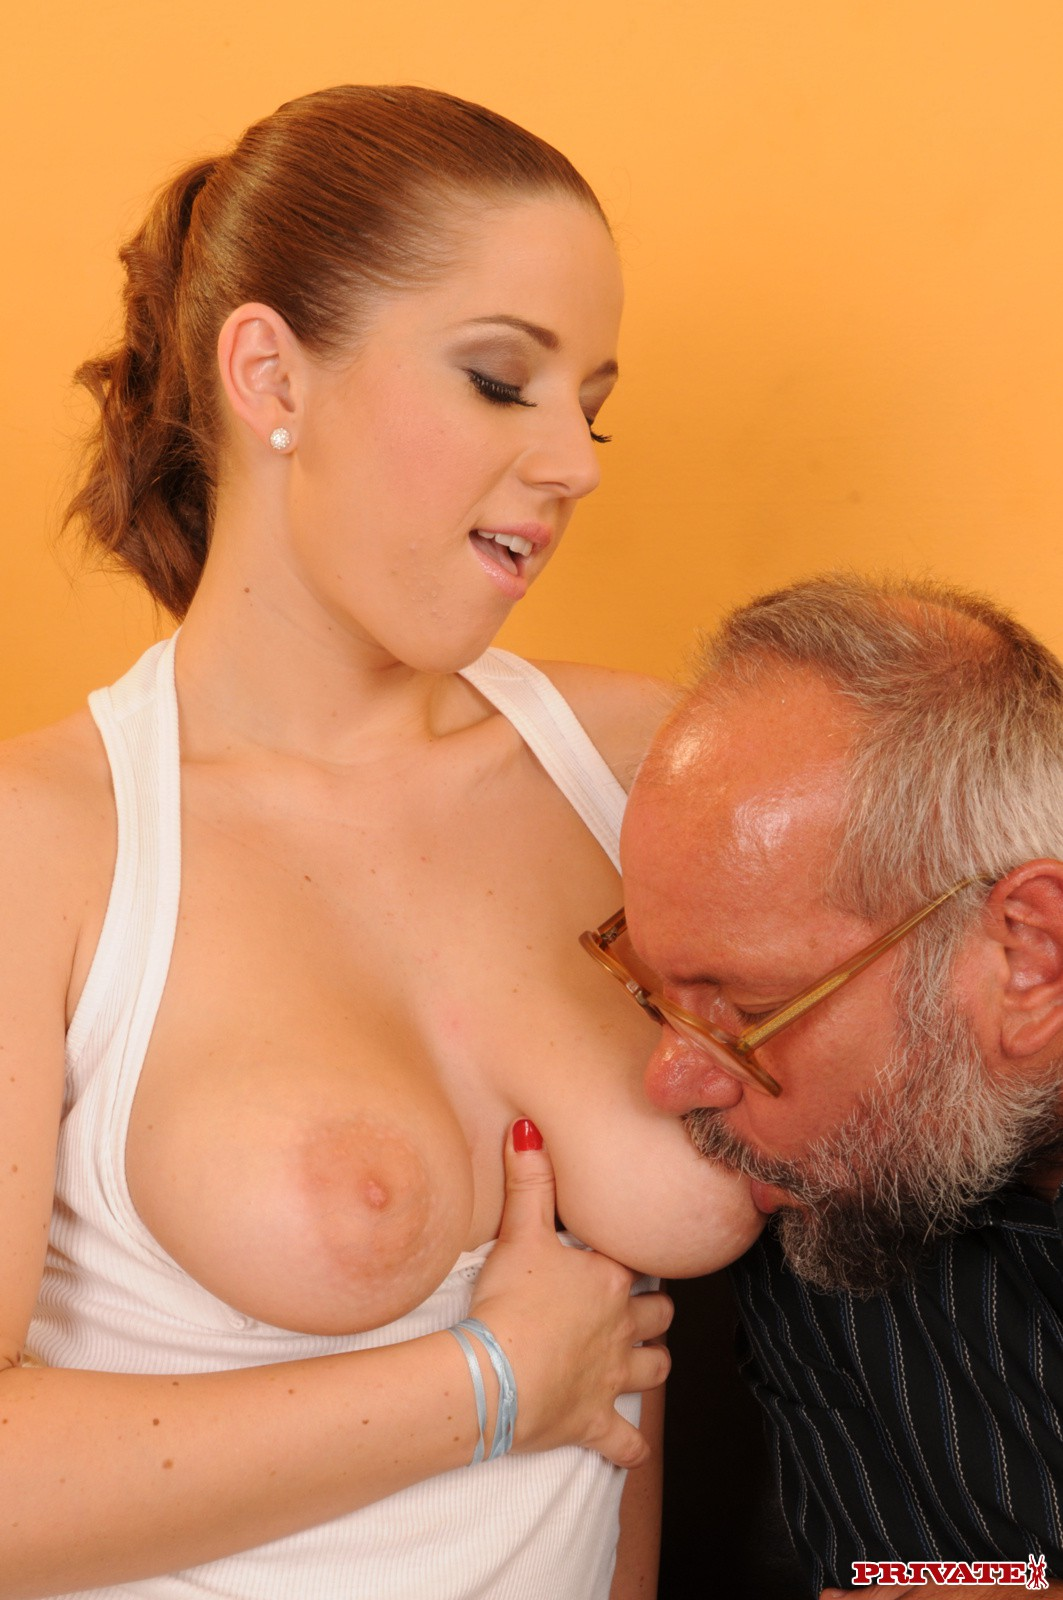 Delicious Chick Nicole Sweet Gets Her Juicy Tits And Smooth Pussy Fucked By Mature Cock